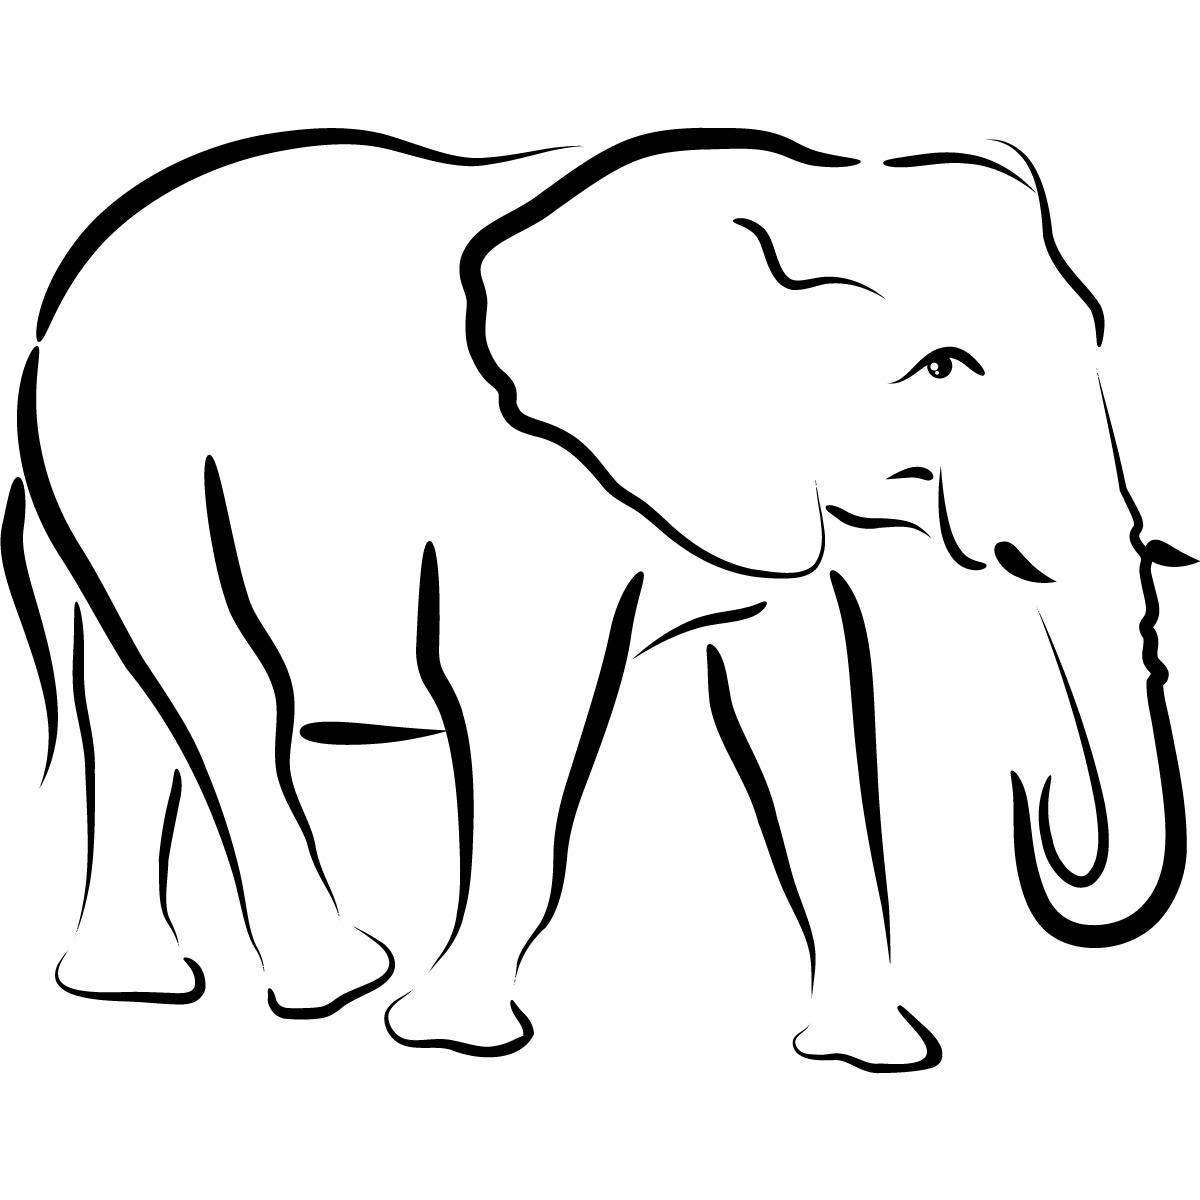 Free Outline Of An Elephant, Download Free Clip Art, Free Clip Art - Free Printable Arty Animal Outlines